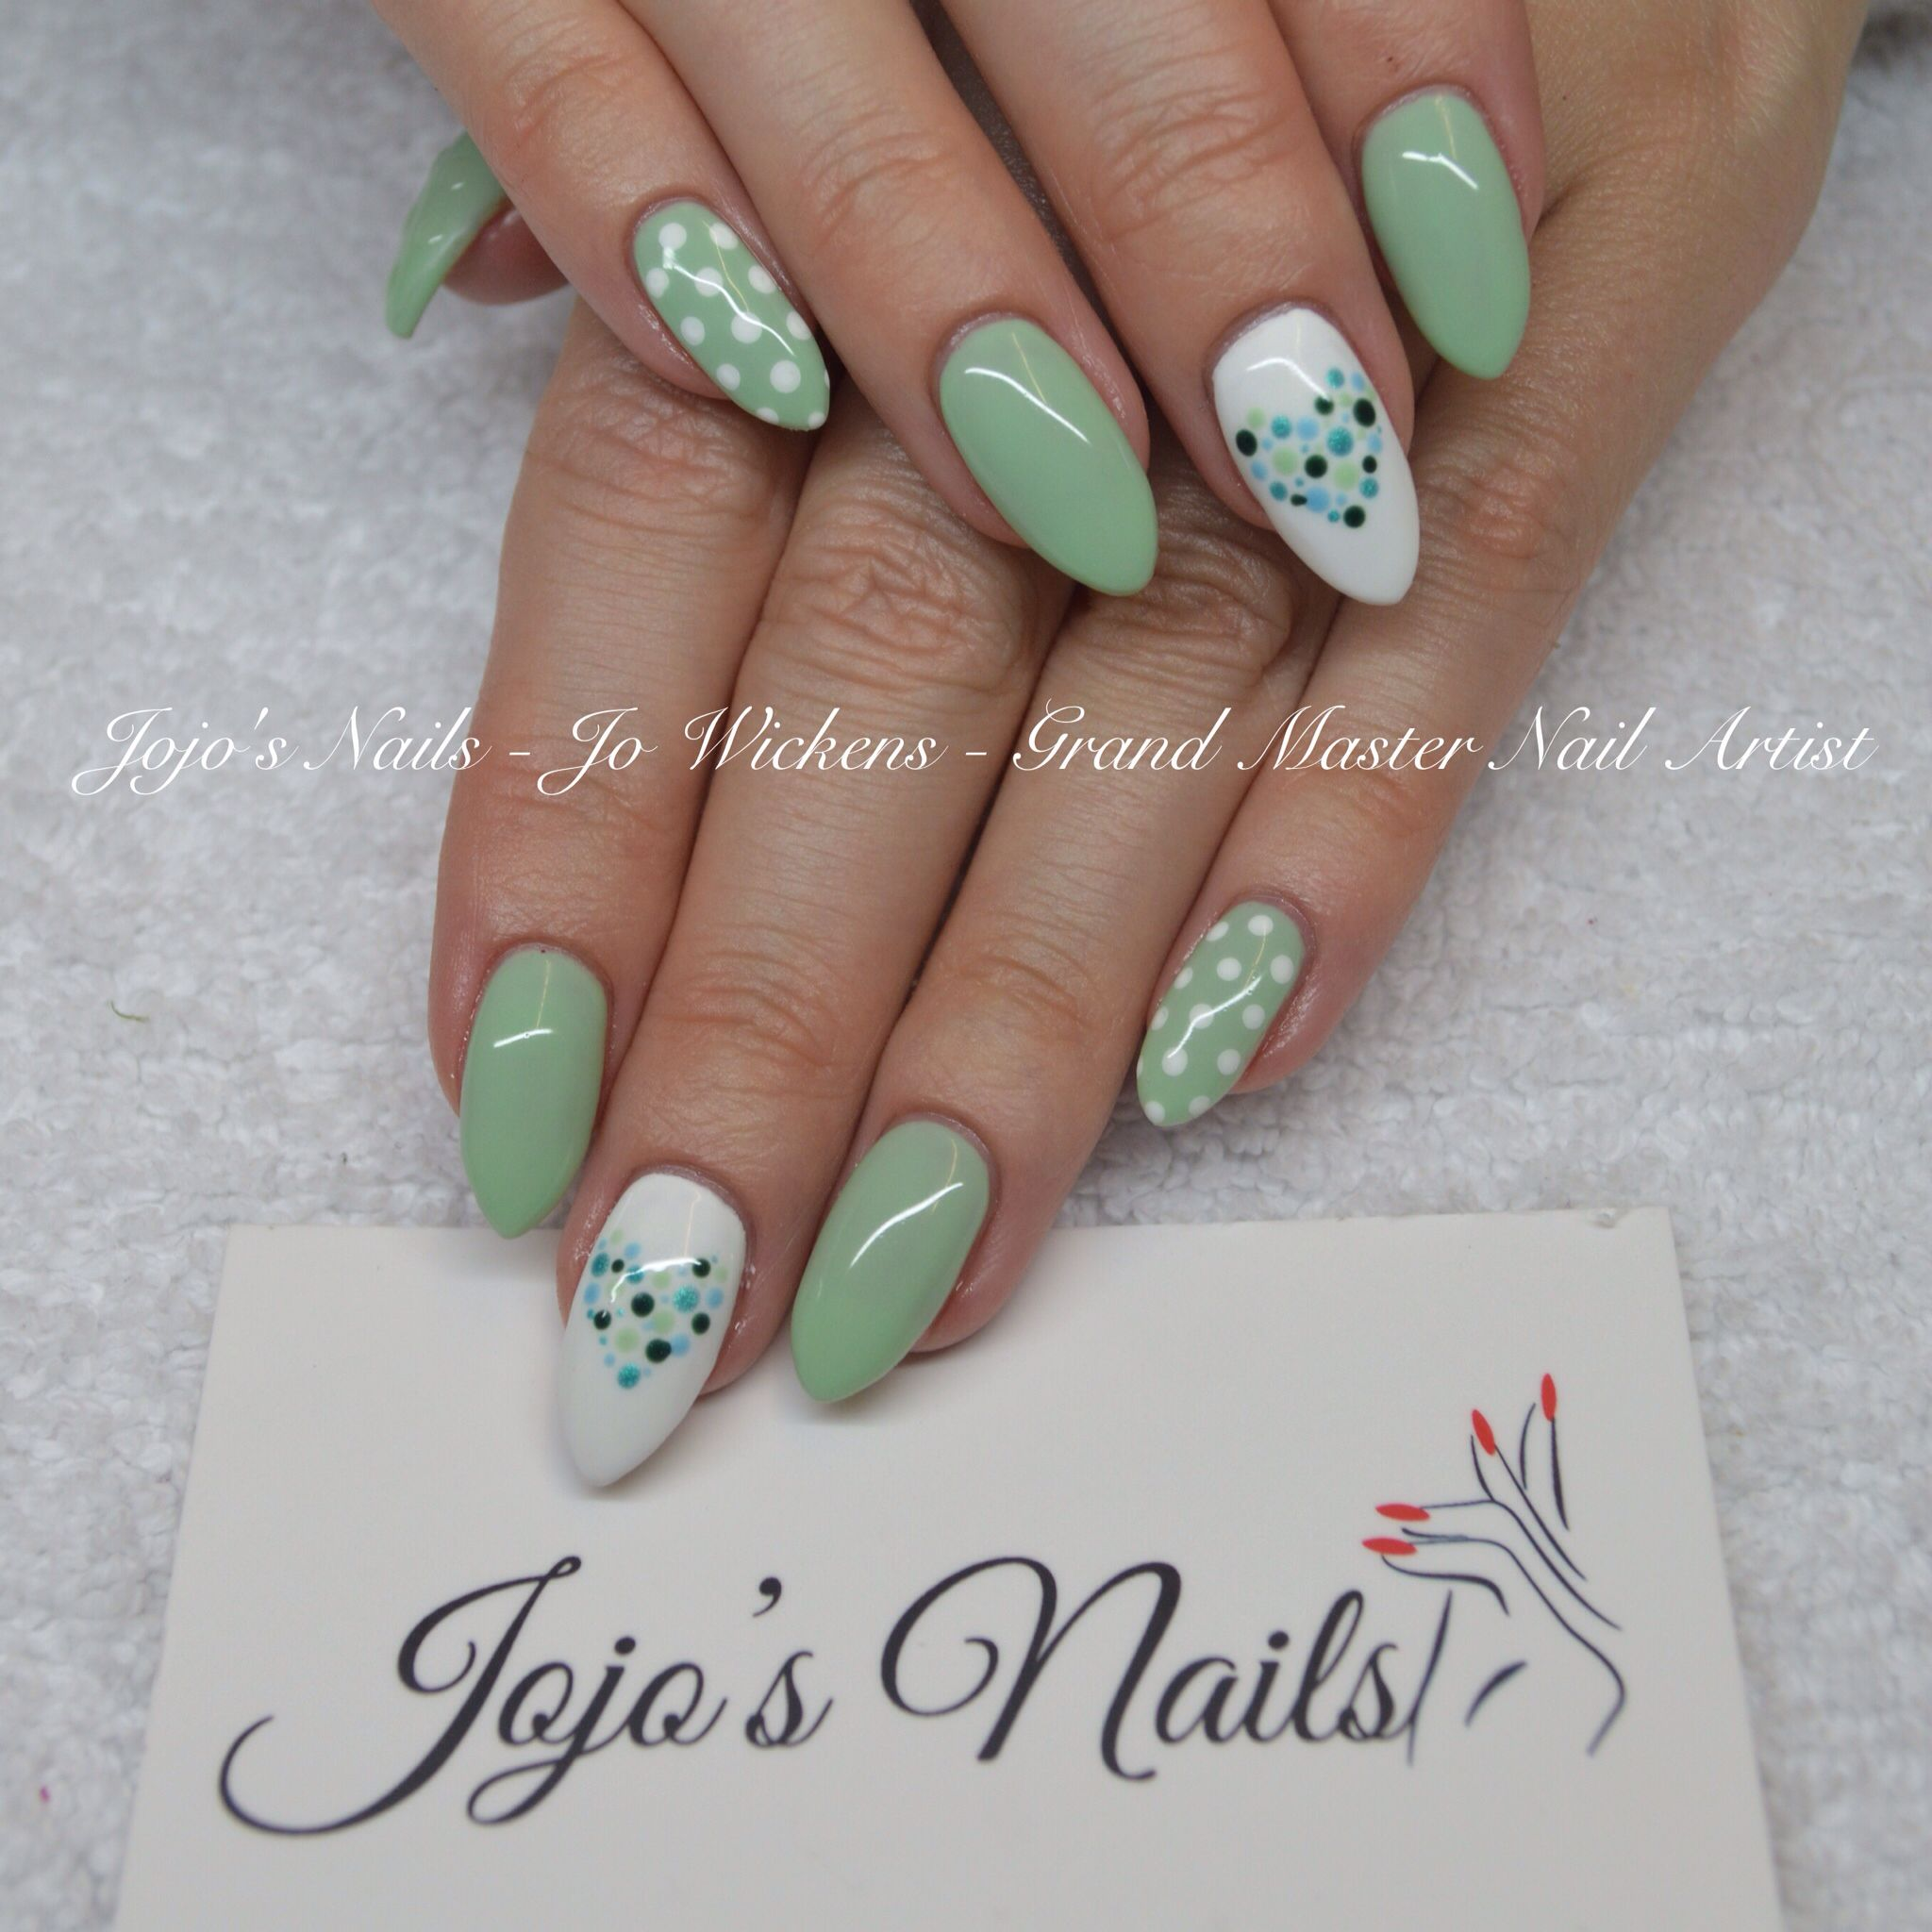 Cnd Brisa Lite Sculpting Gel Overlays With Hand Painted Nail Art By Jo Wickens